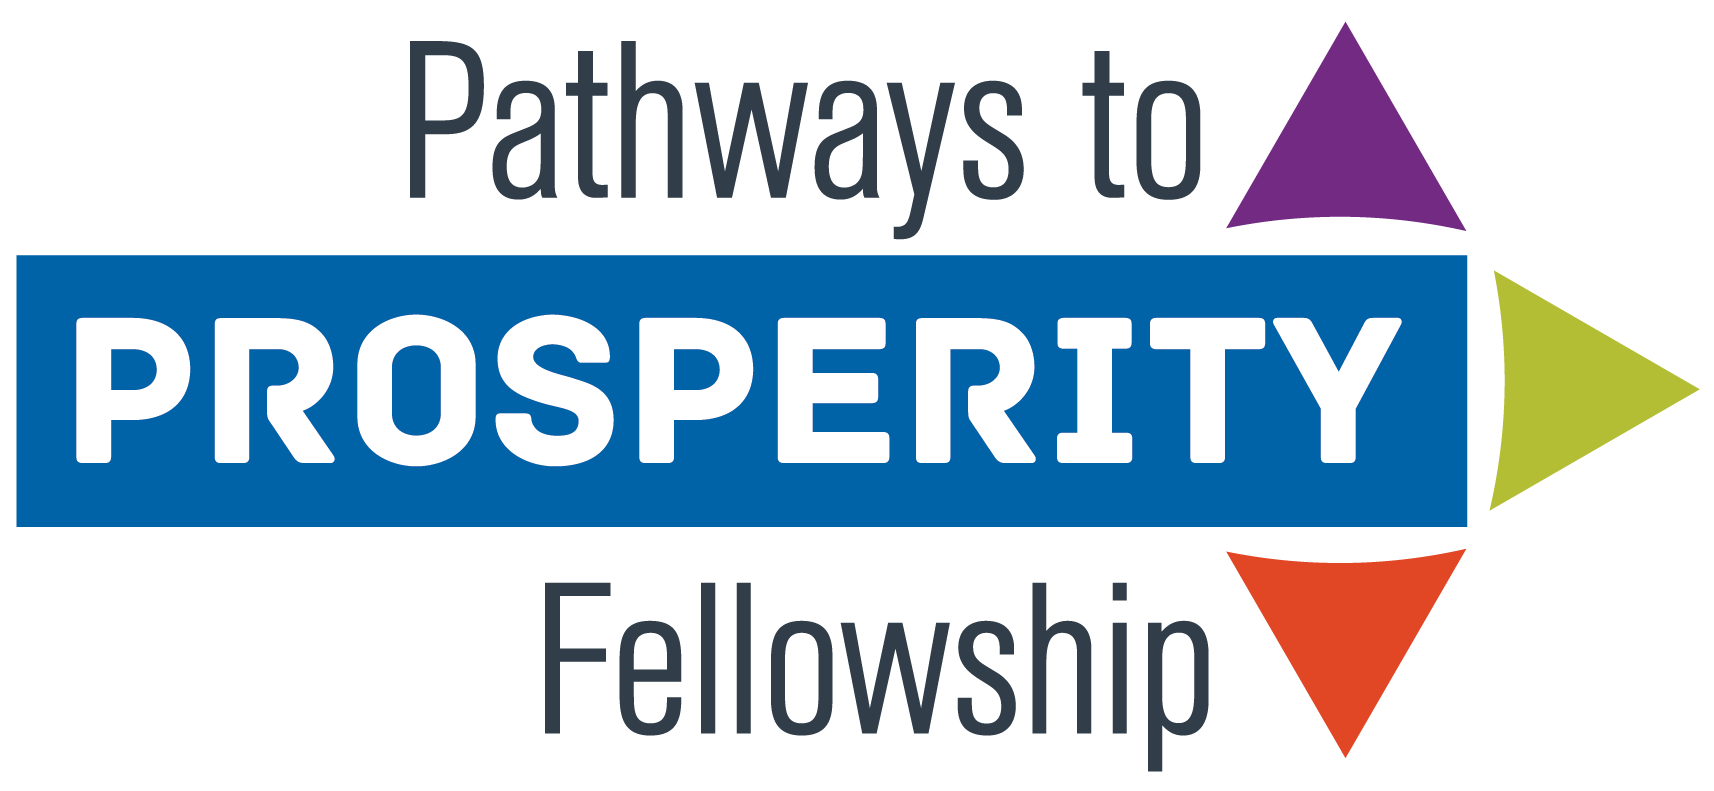 BRAC's Pathway to Posterity Fellowships